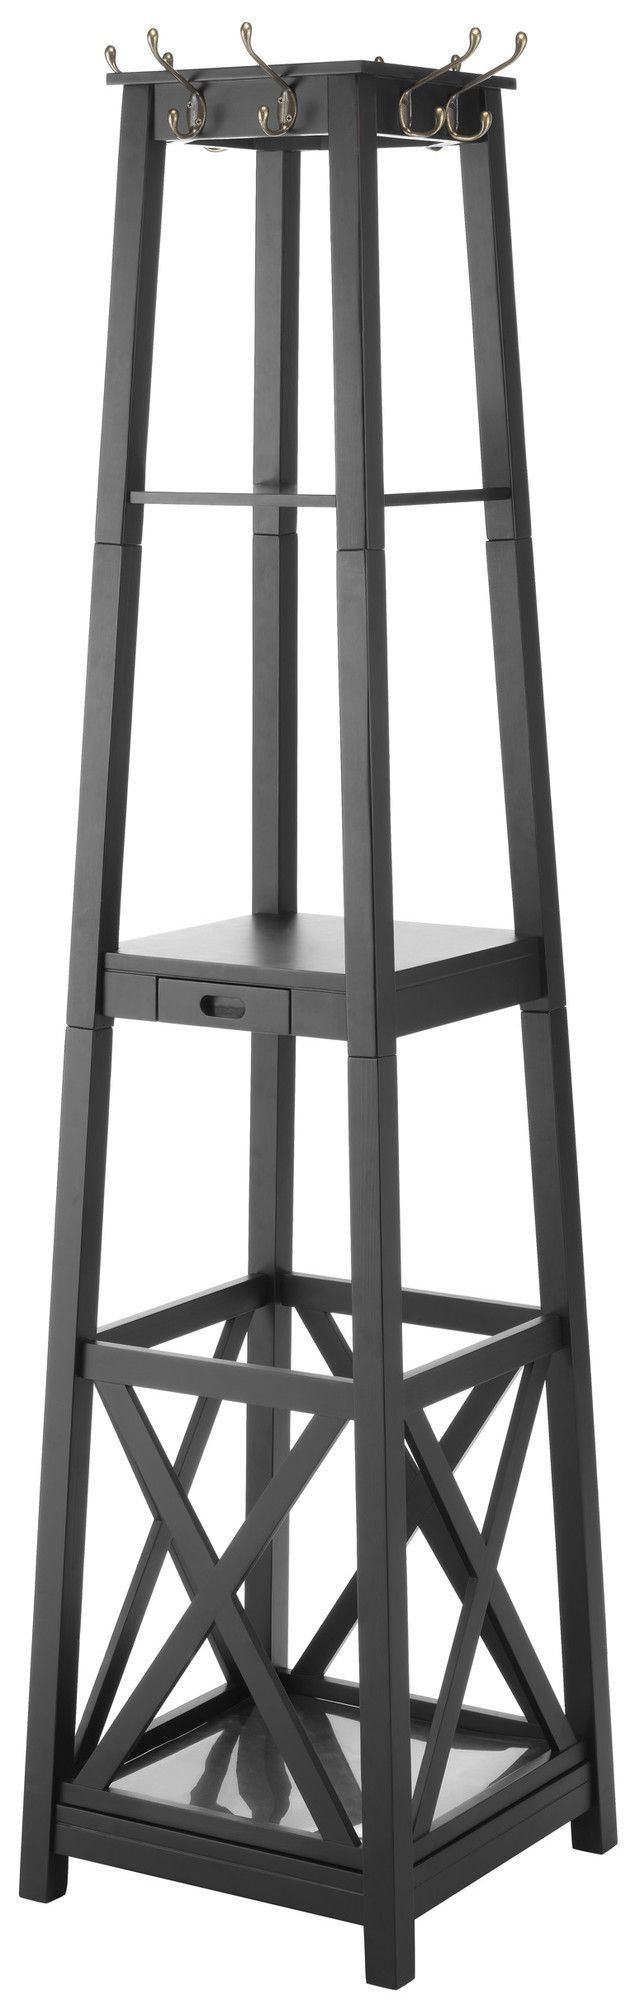 Features: -Includes 8 coat and hat hooks, an umbrella stand, 3 shelves and a…